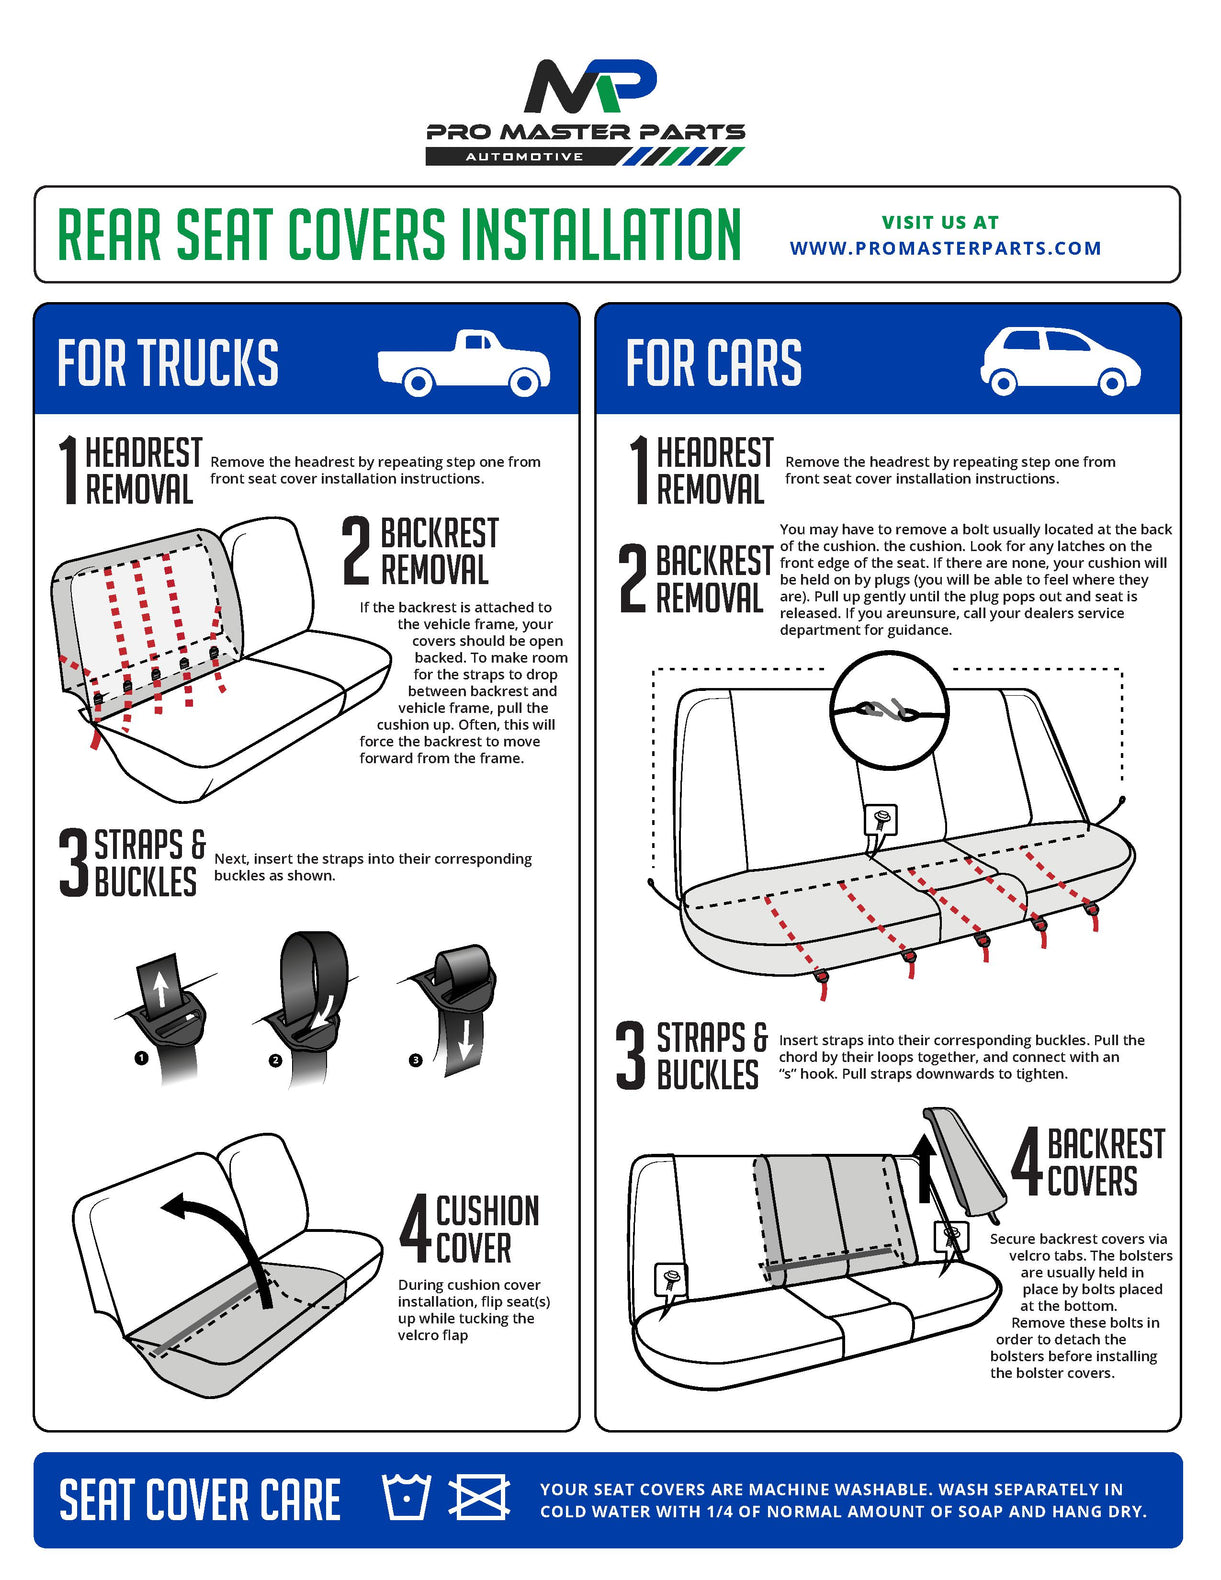 Custom-Fit Seat Covers Installation